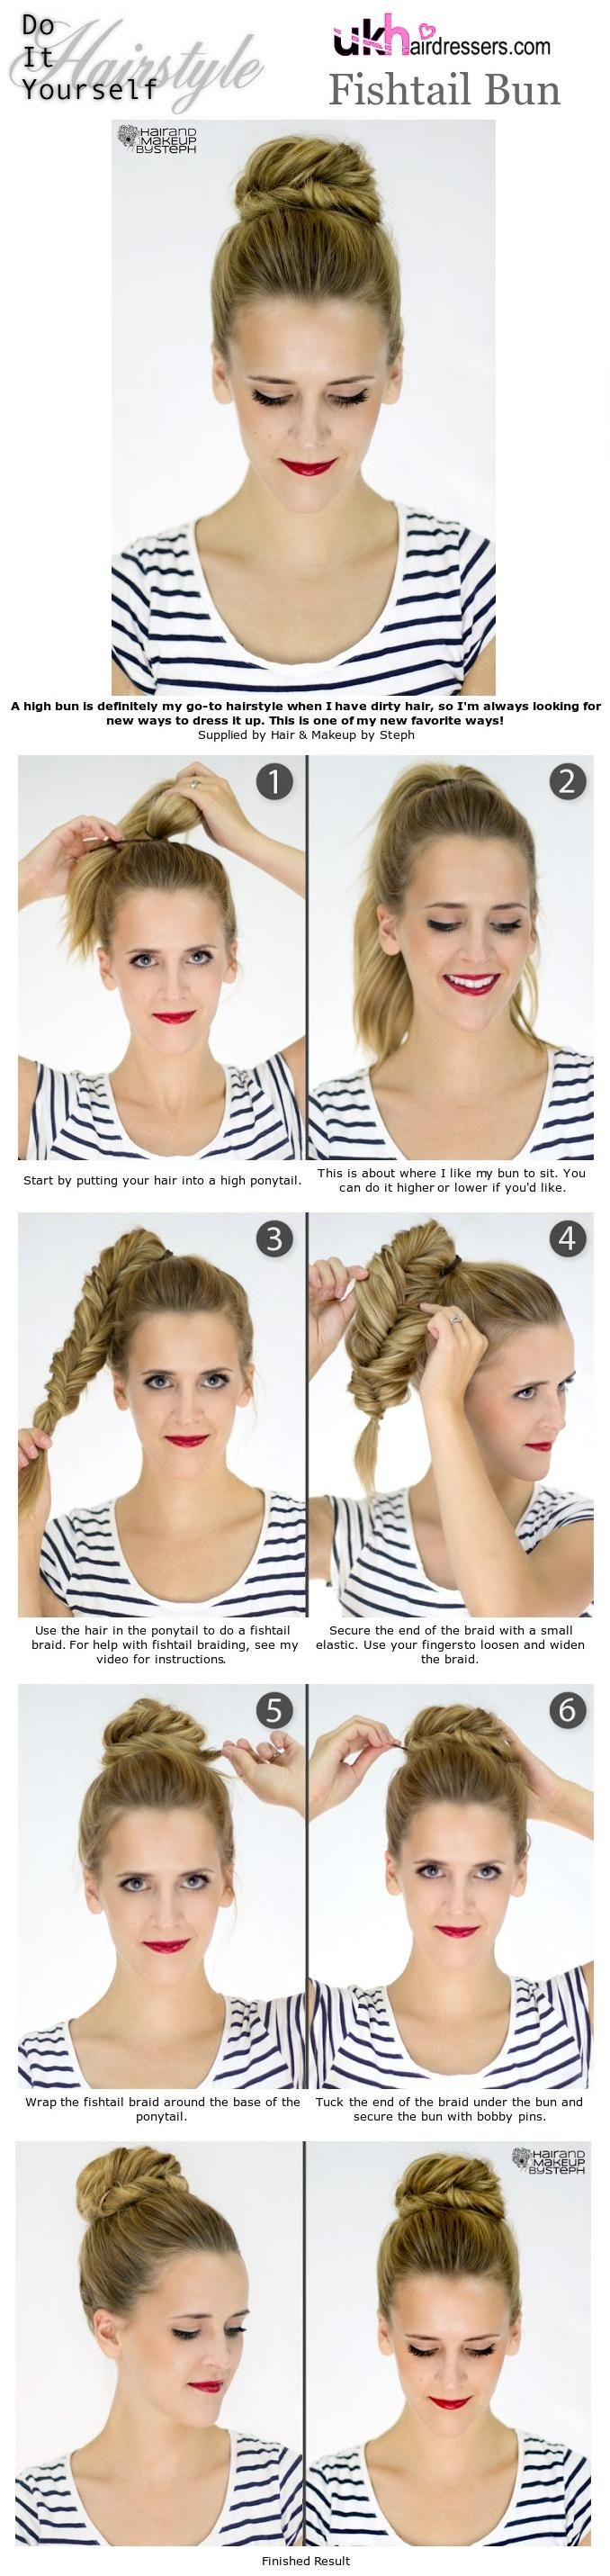 I absolutely love buns and finding new ways to create them this